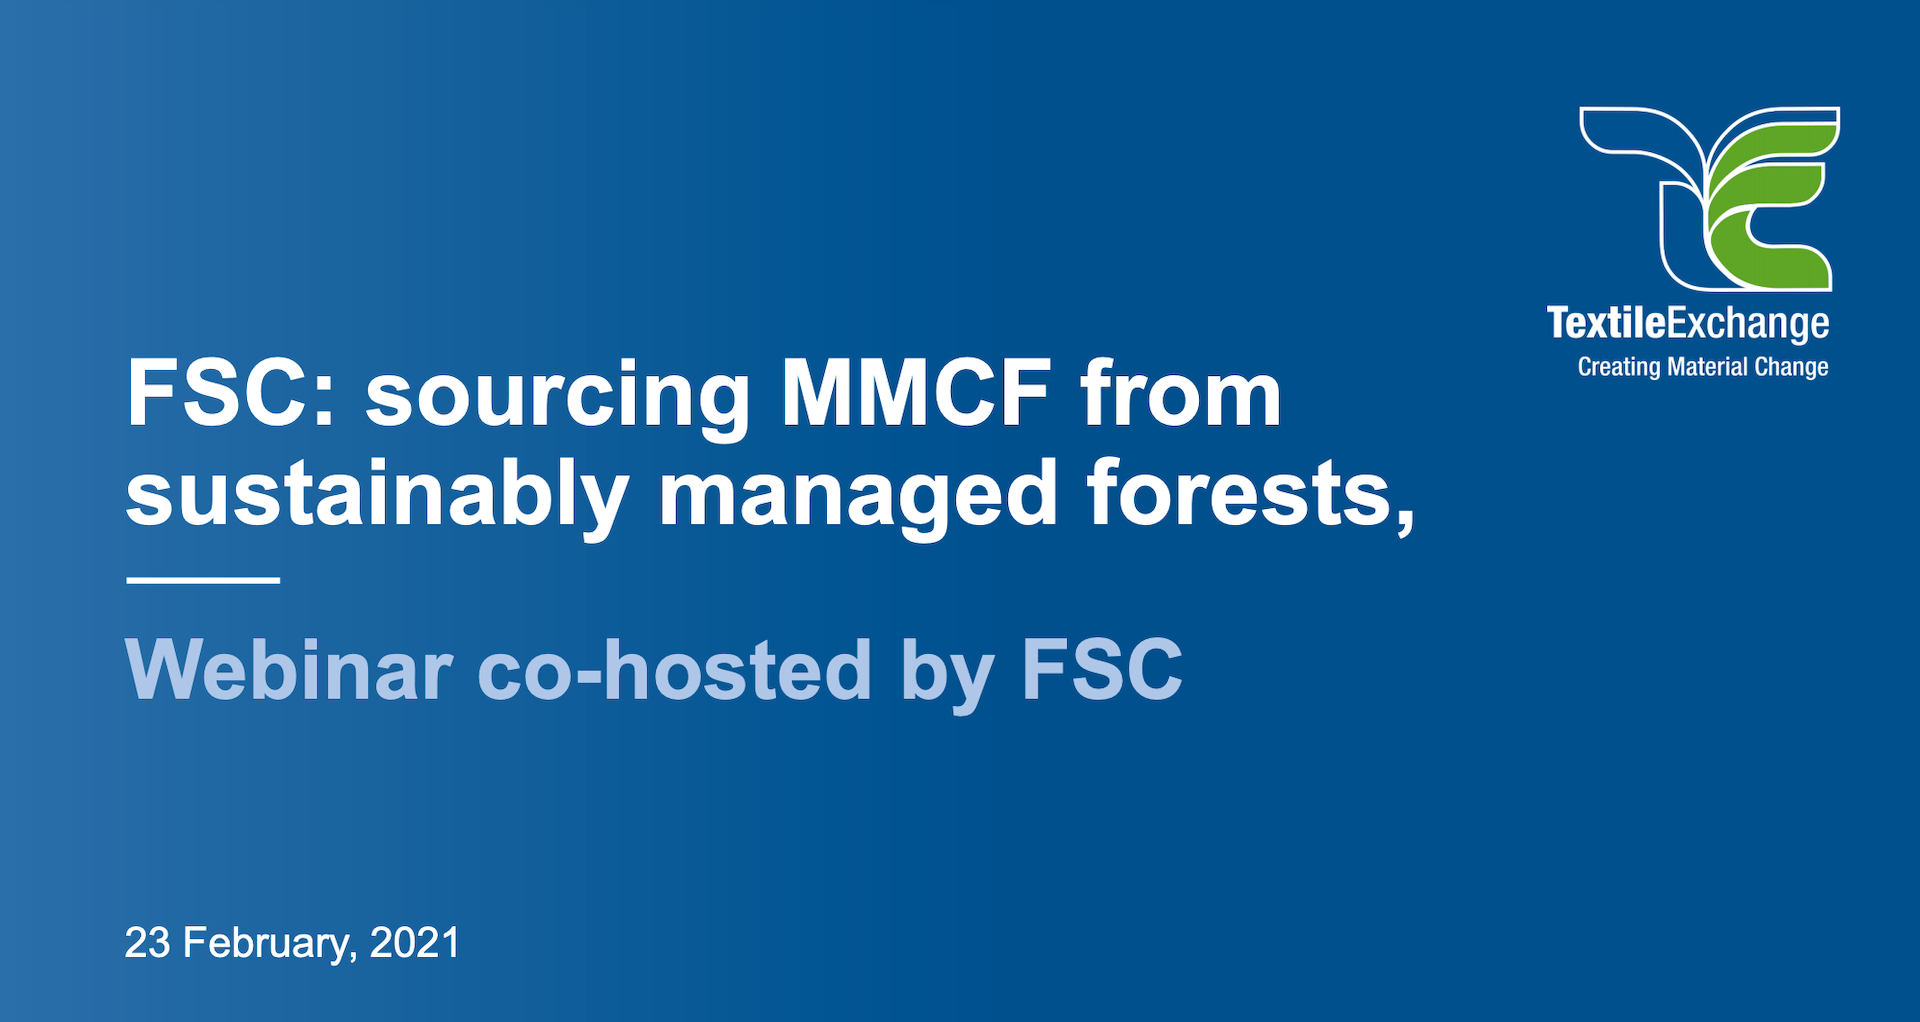 FSC: SOURCING MMCF FROM SUSTAINABLY MANAGED FORESTS